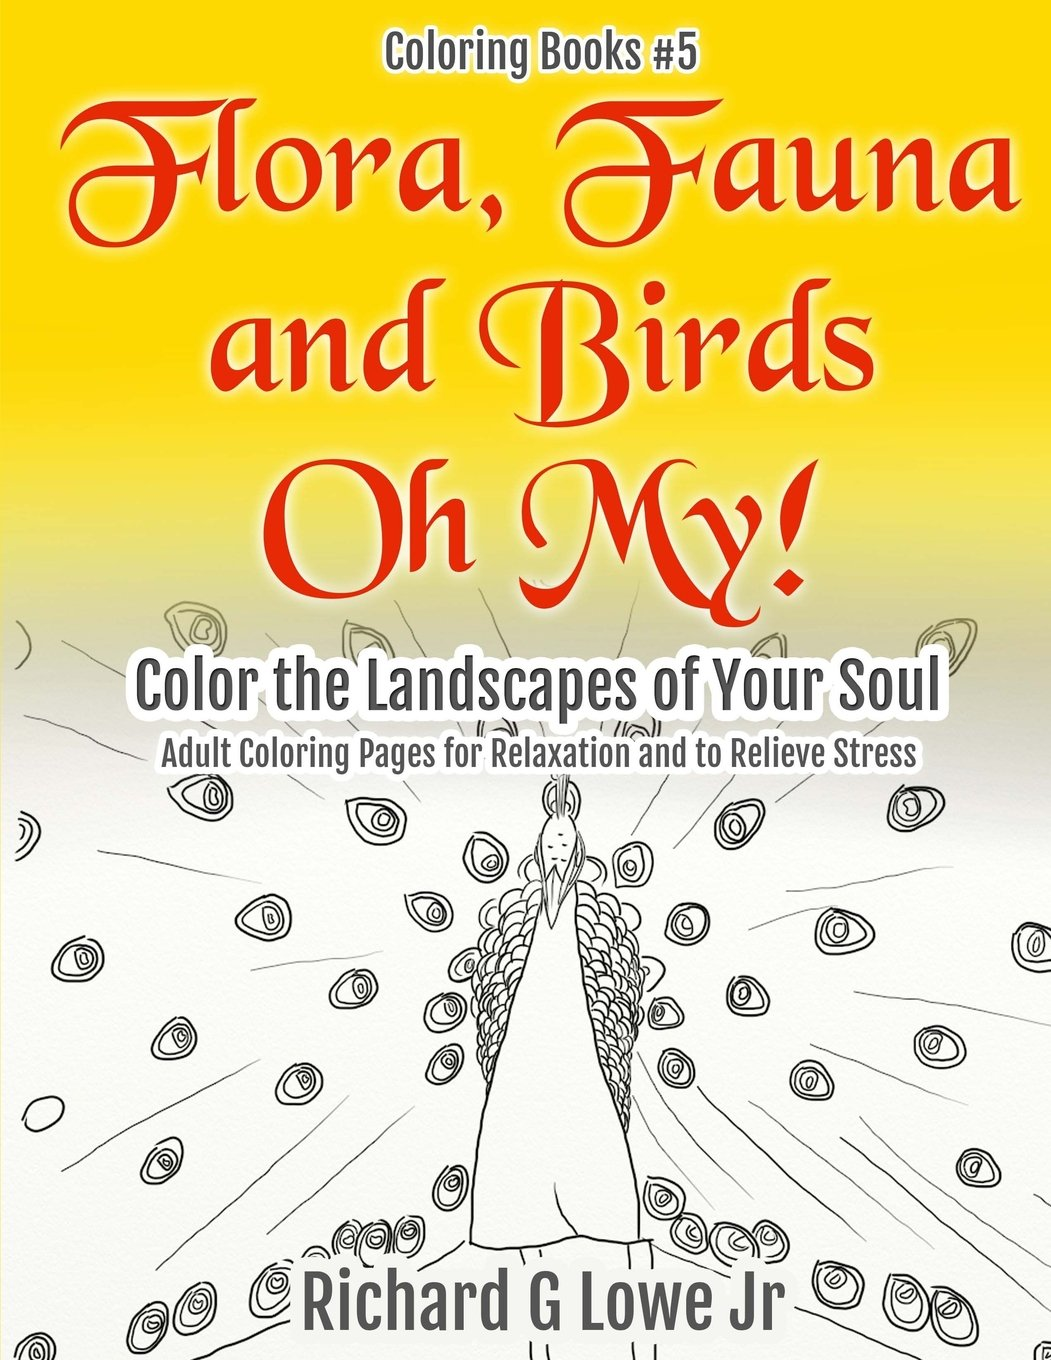 Download Flora, Fauna and Birds Oh My! Color the Landscapes of Your Soul: Adult Coloring Pages for Relaxation and to Relieve Stress (Coloring Books) (Volume 5) pdf epub